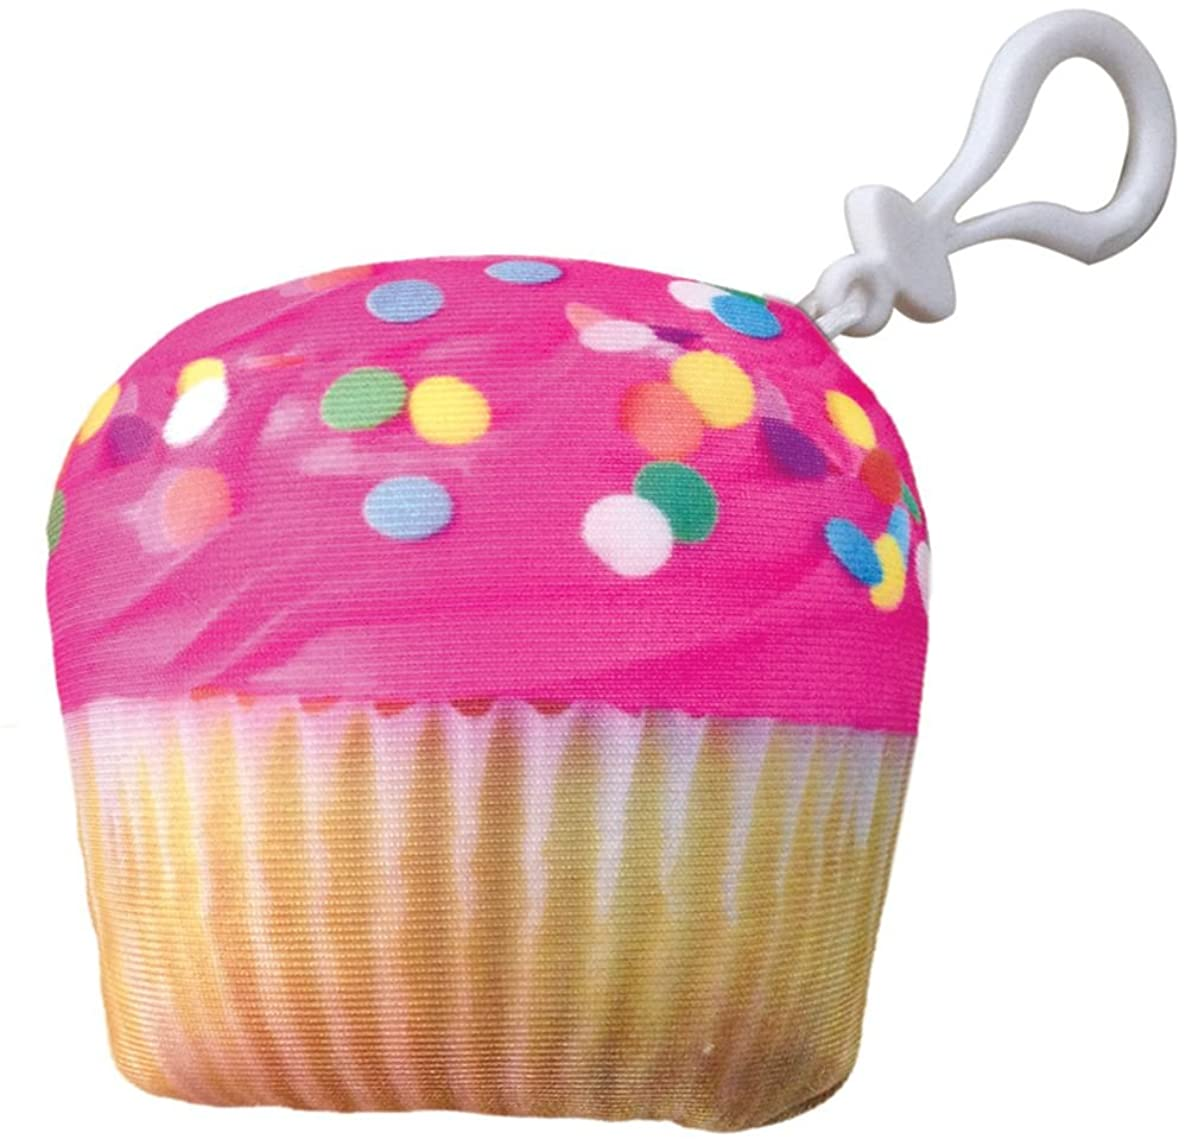 iscream Vanilla Scented Pink Icing Cupcake Mini Microbead Pillow Backpack Charm